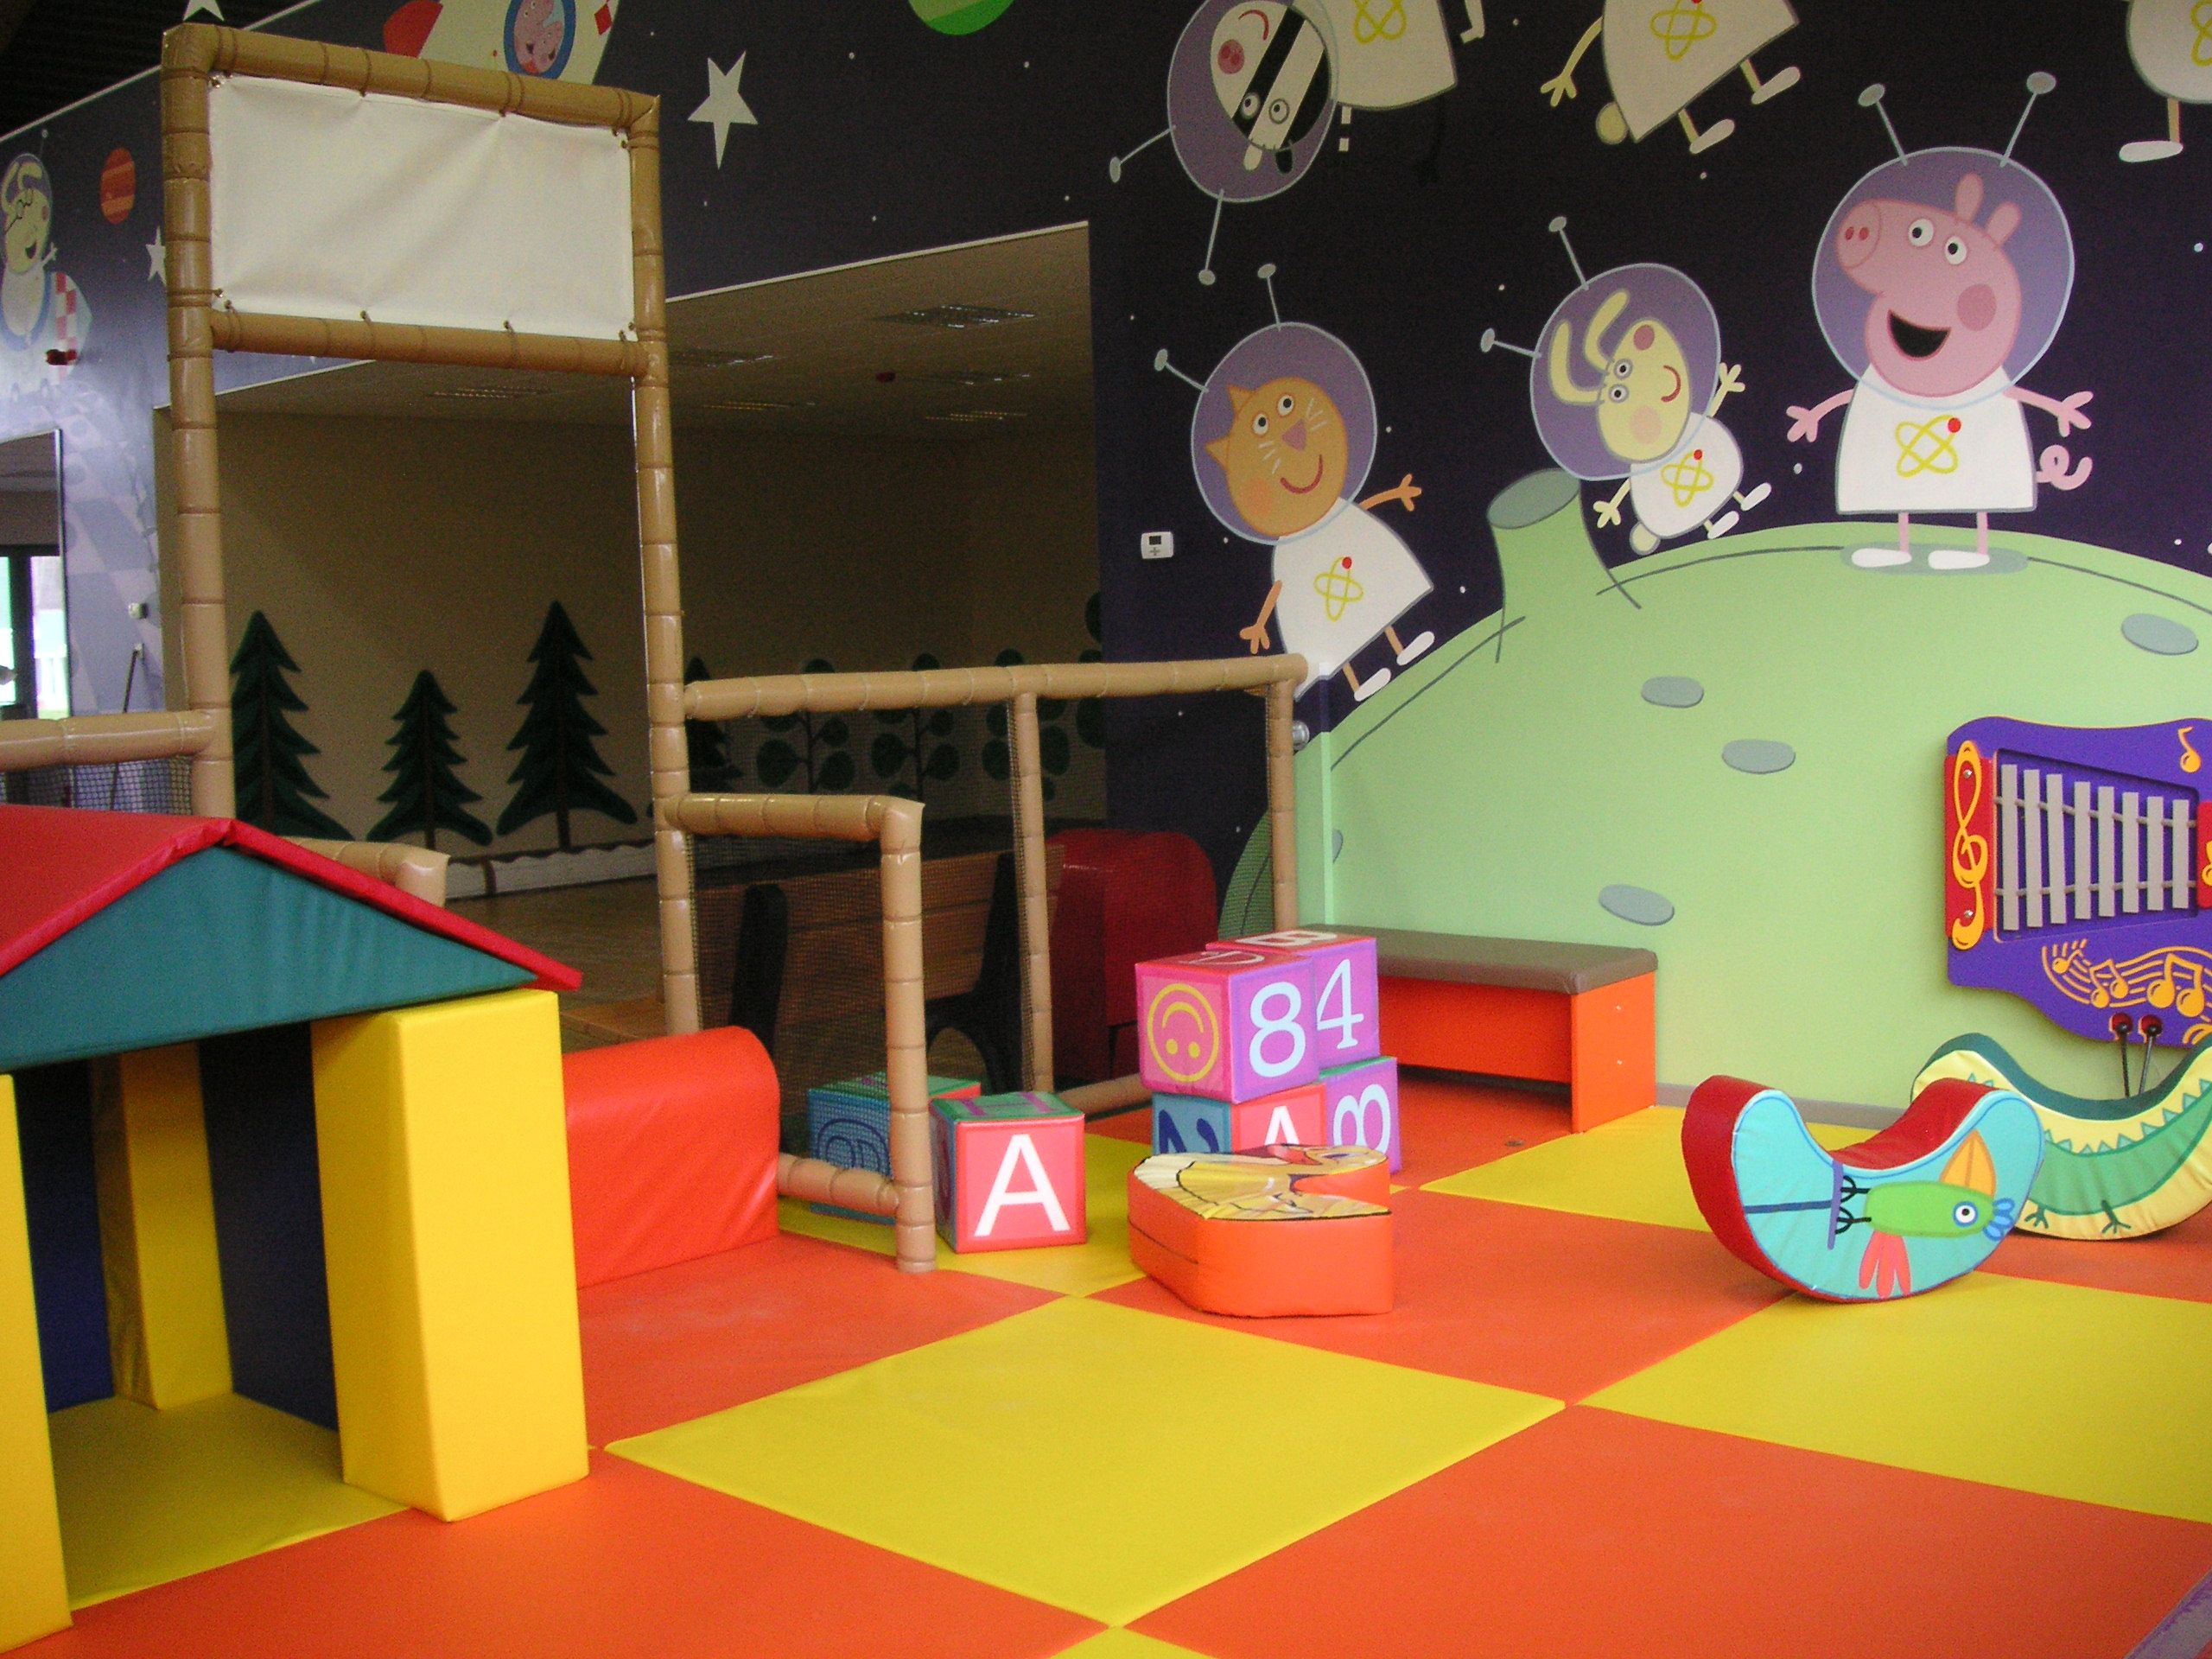 George Spaceship Playzone At Peppa Pig In Paultons Park In